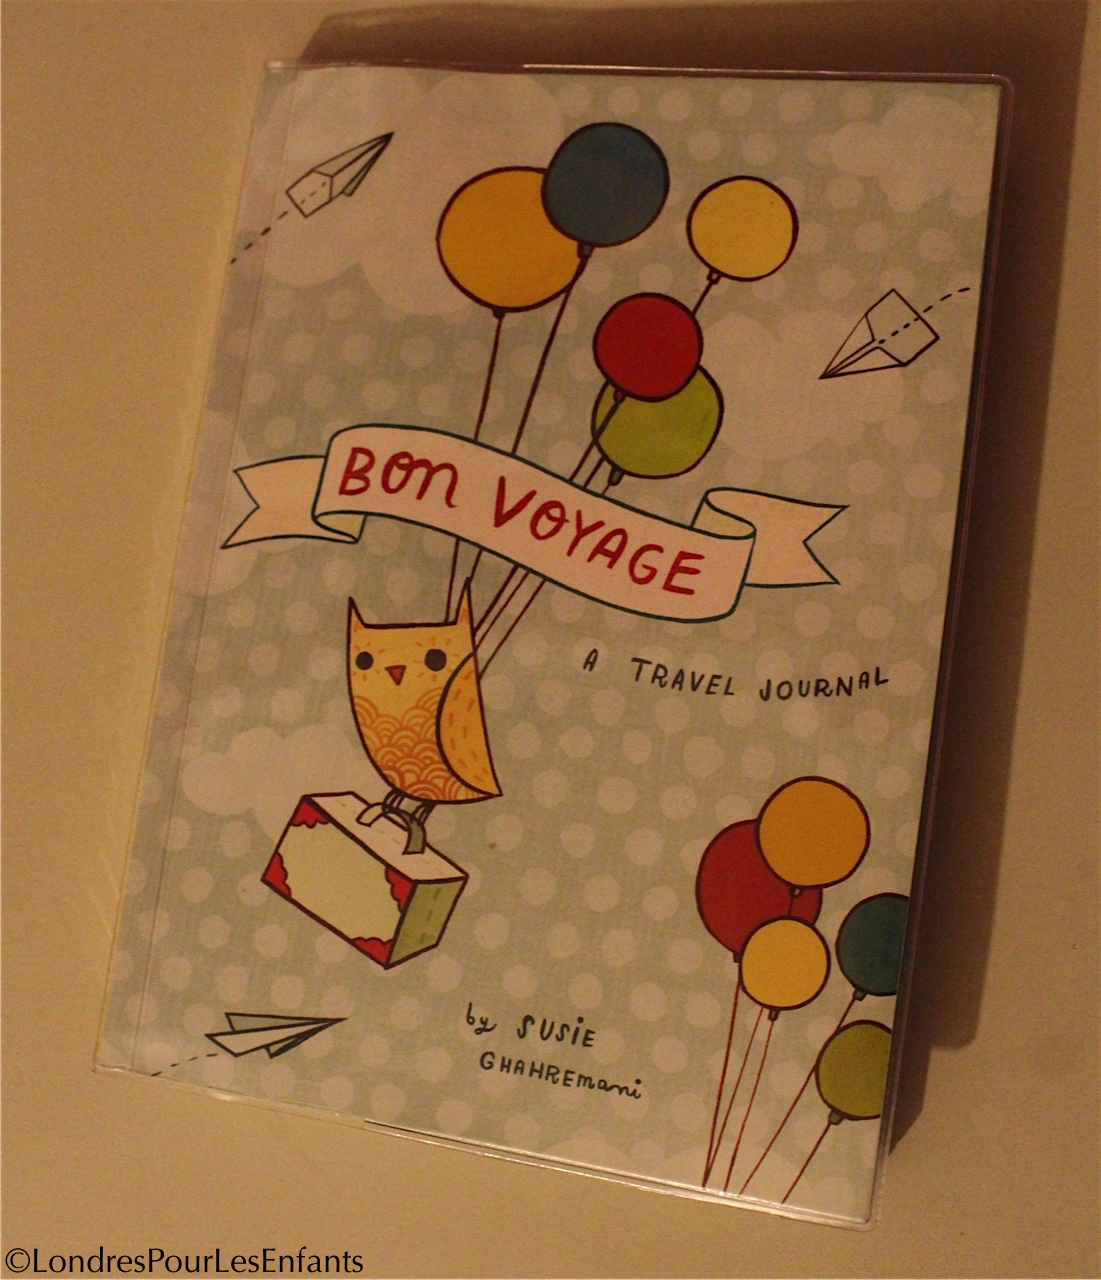 Bon voyage : travel journal